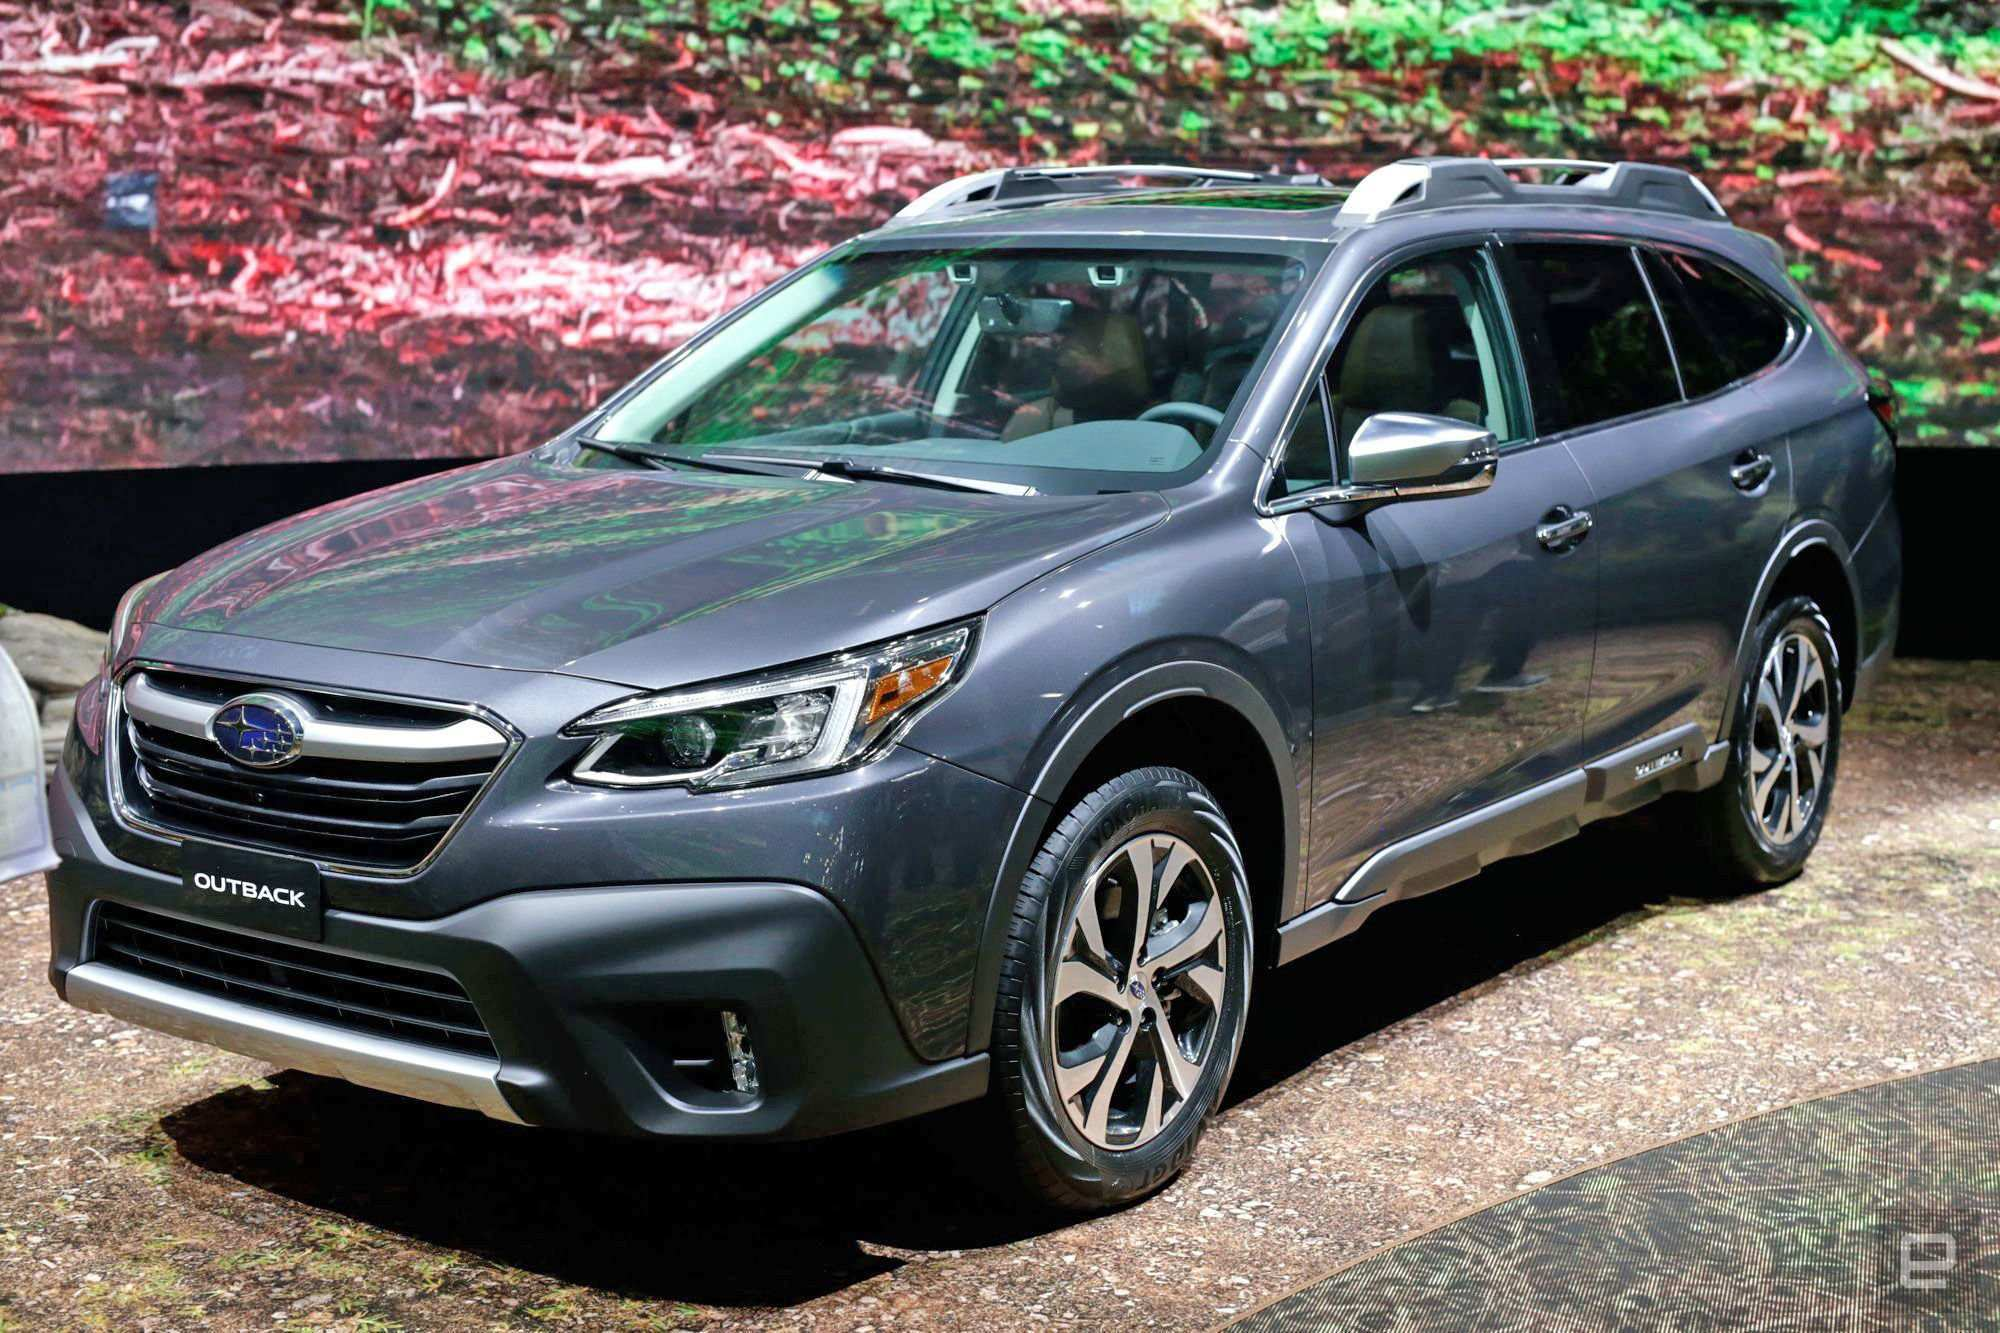 95 The Best Subaru New Engine 2020 Price